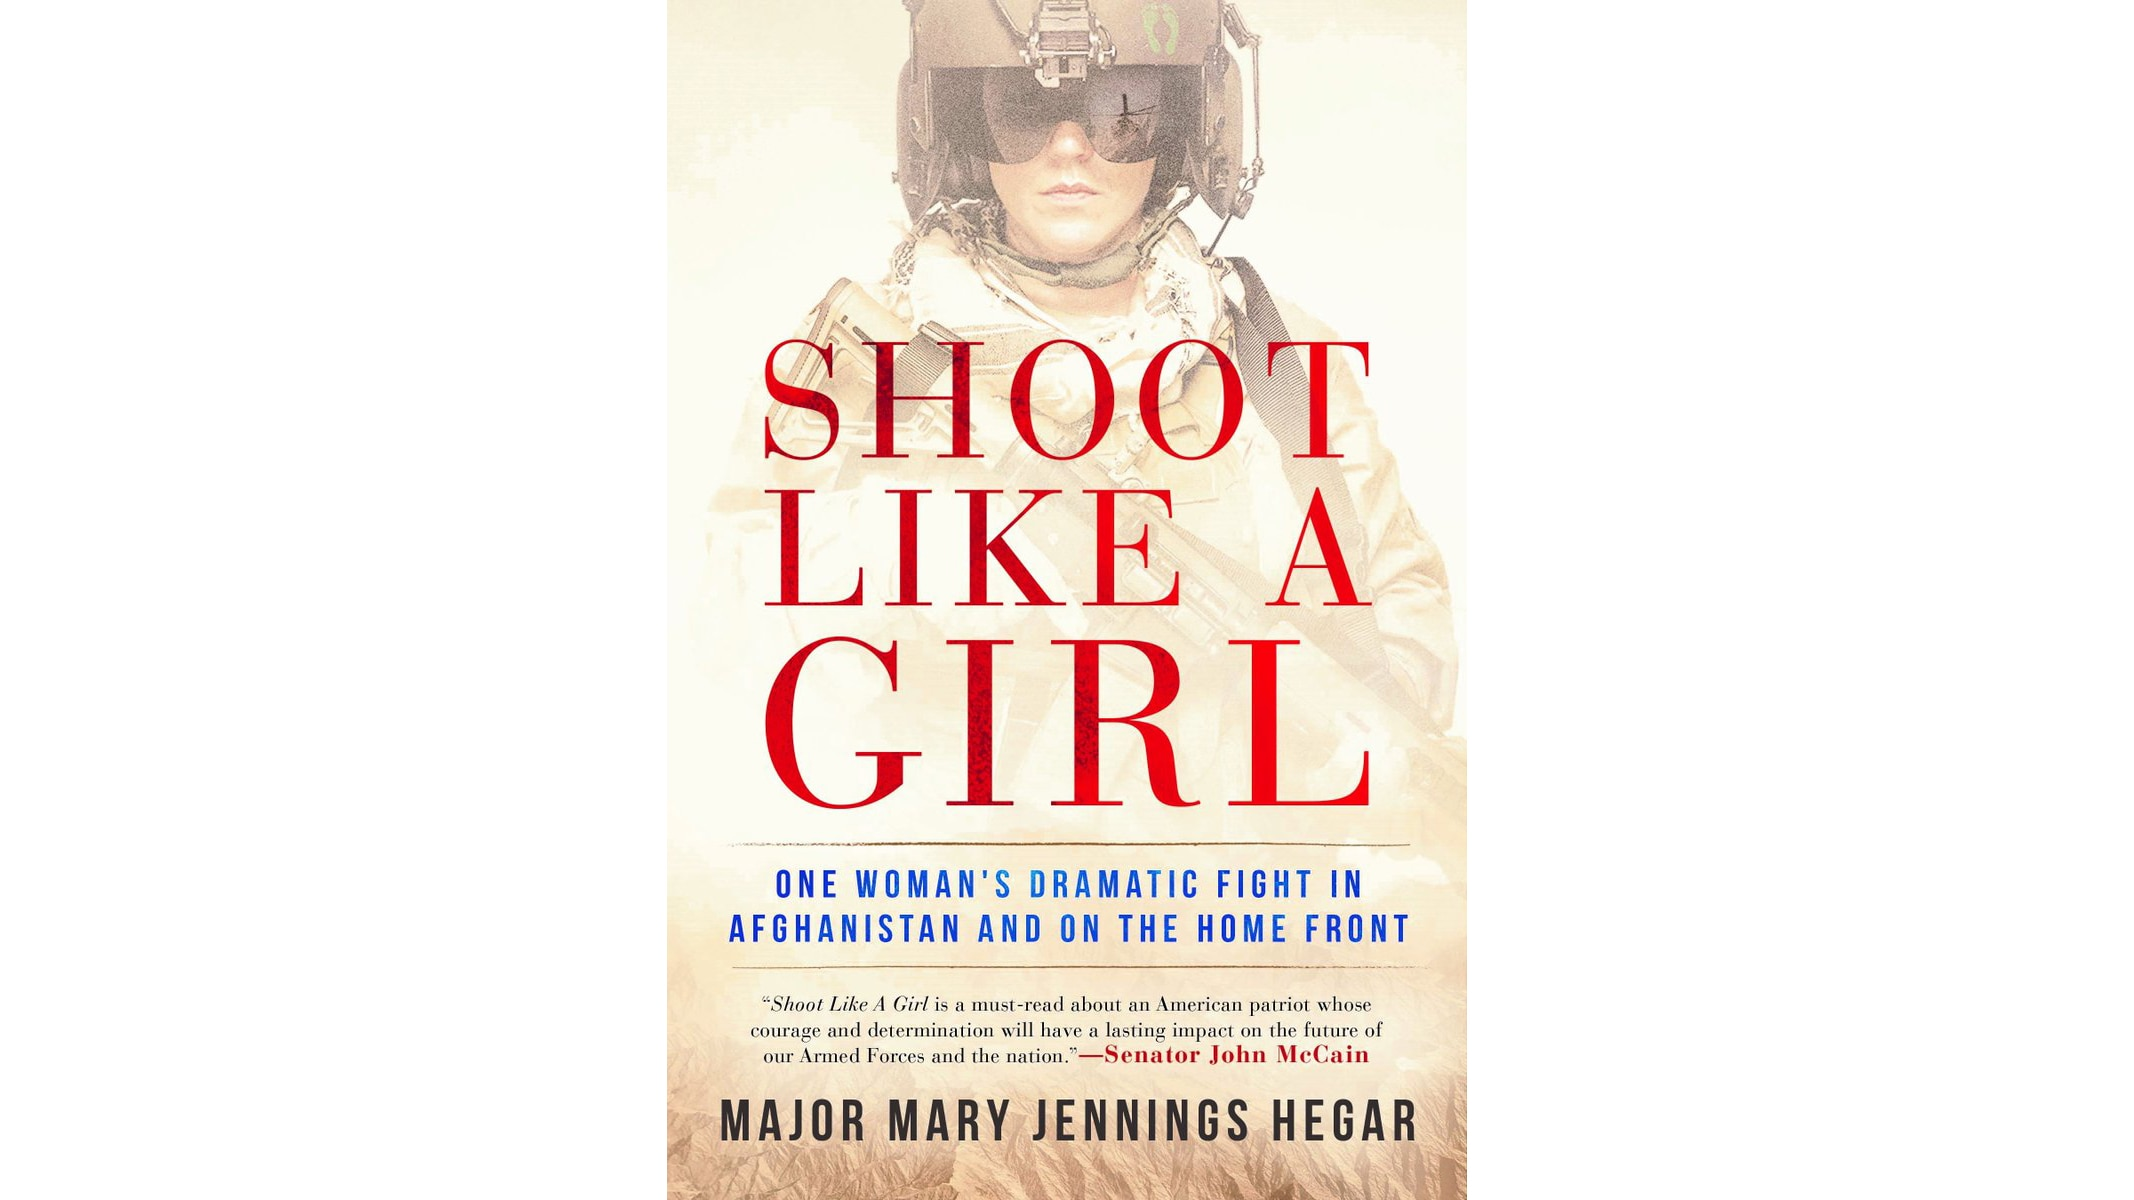 Spring 2017 book review -- Shoot Like a Girl: One Woman's Dramatic Fight in Afghanistan and on the Home Front